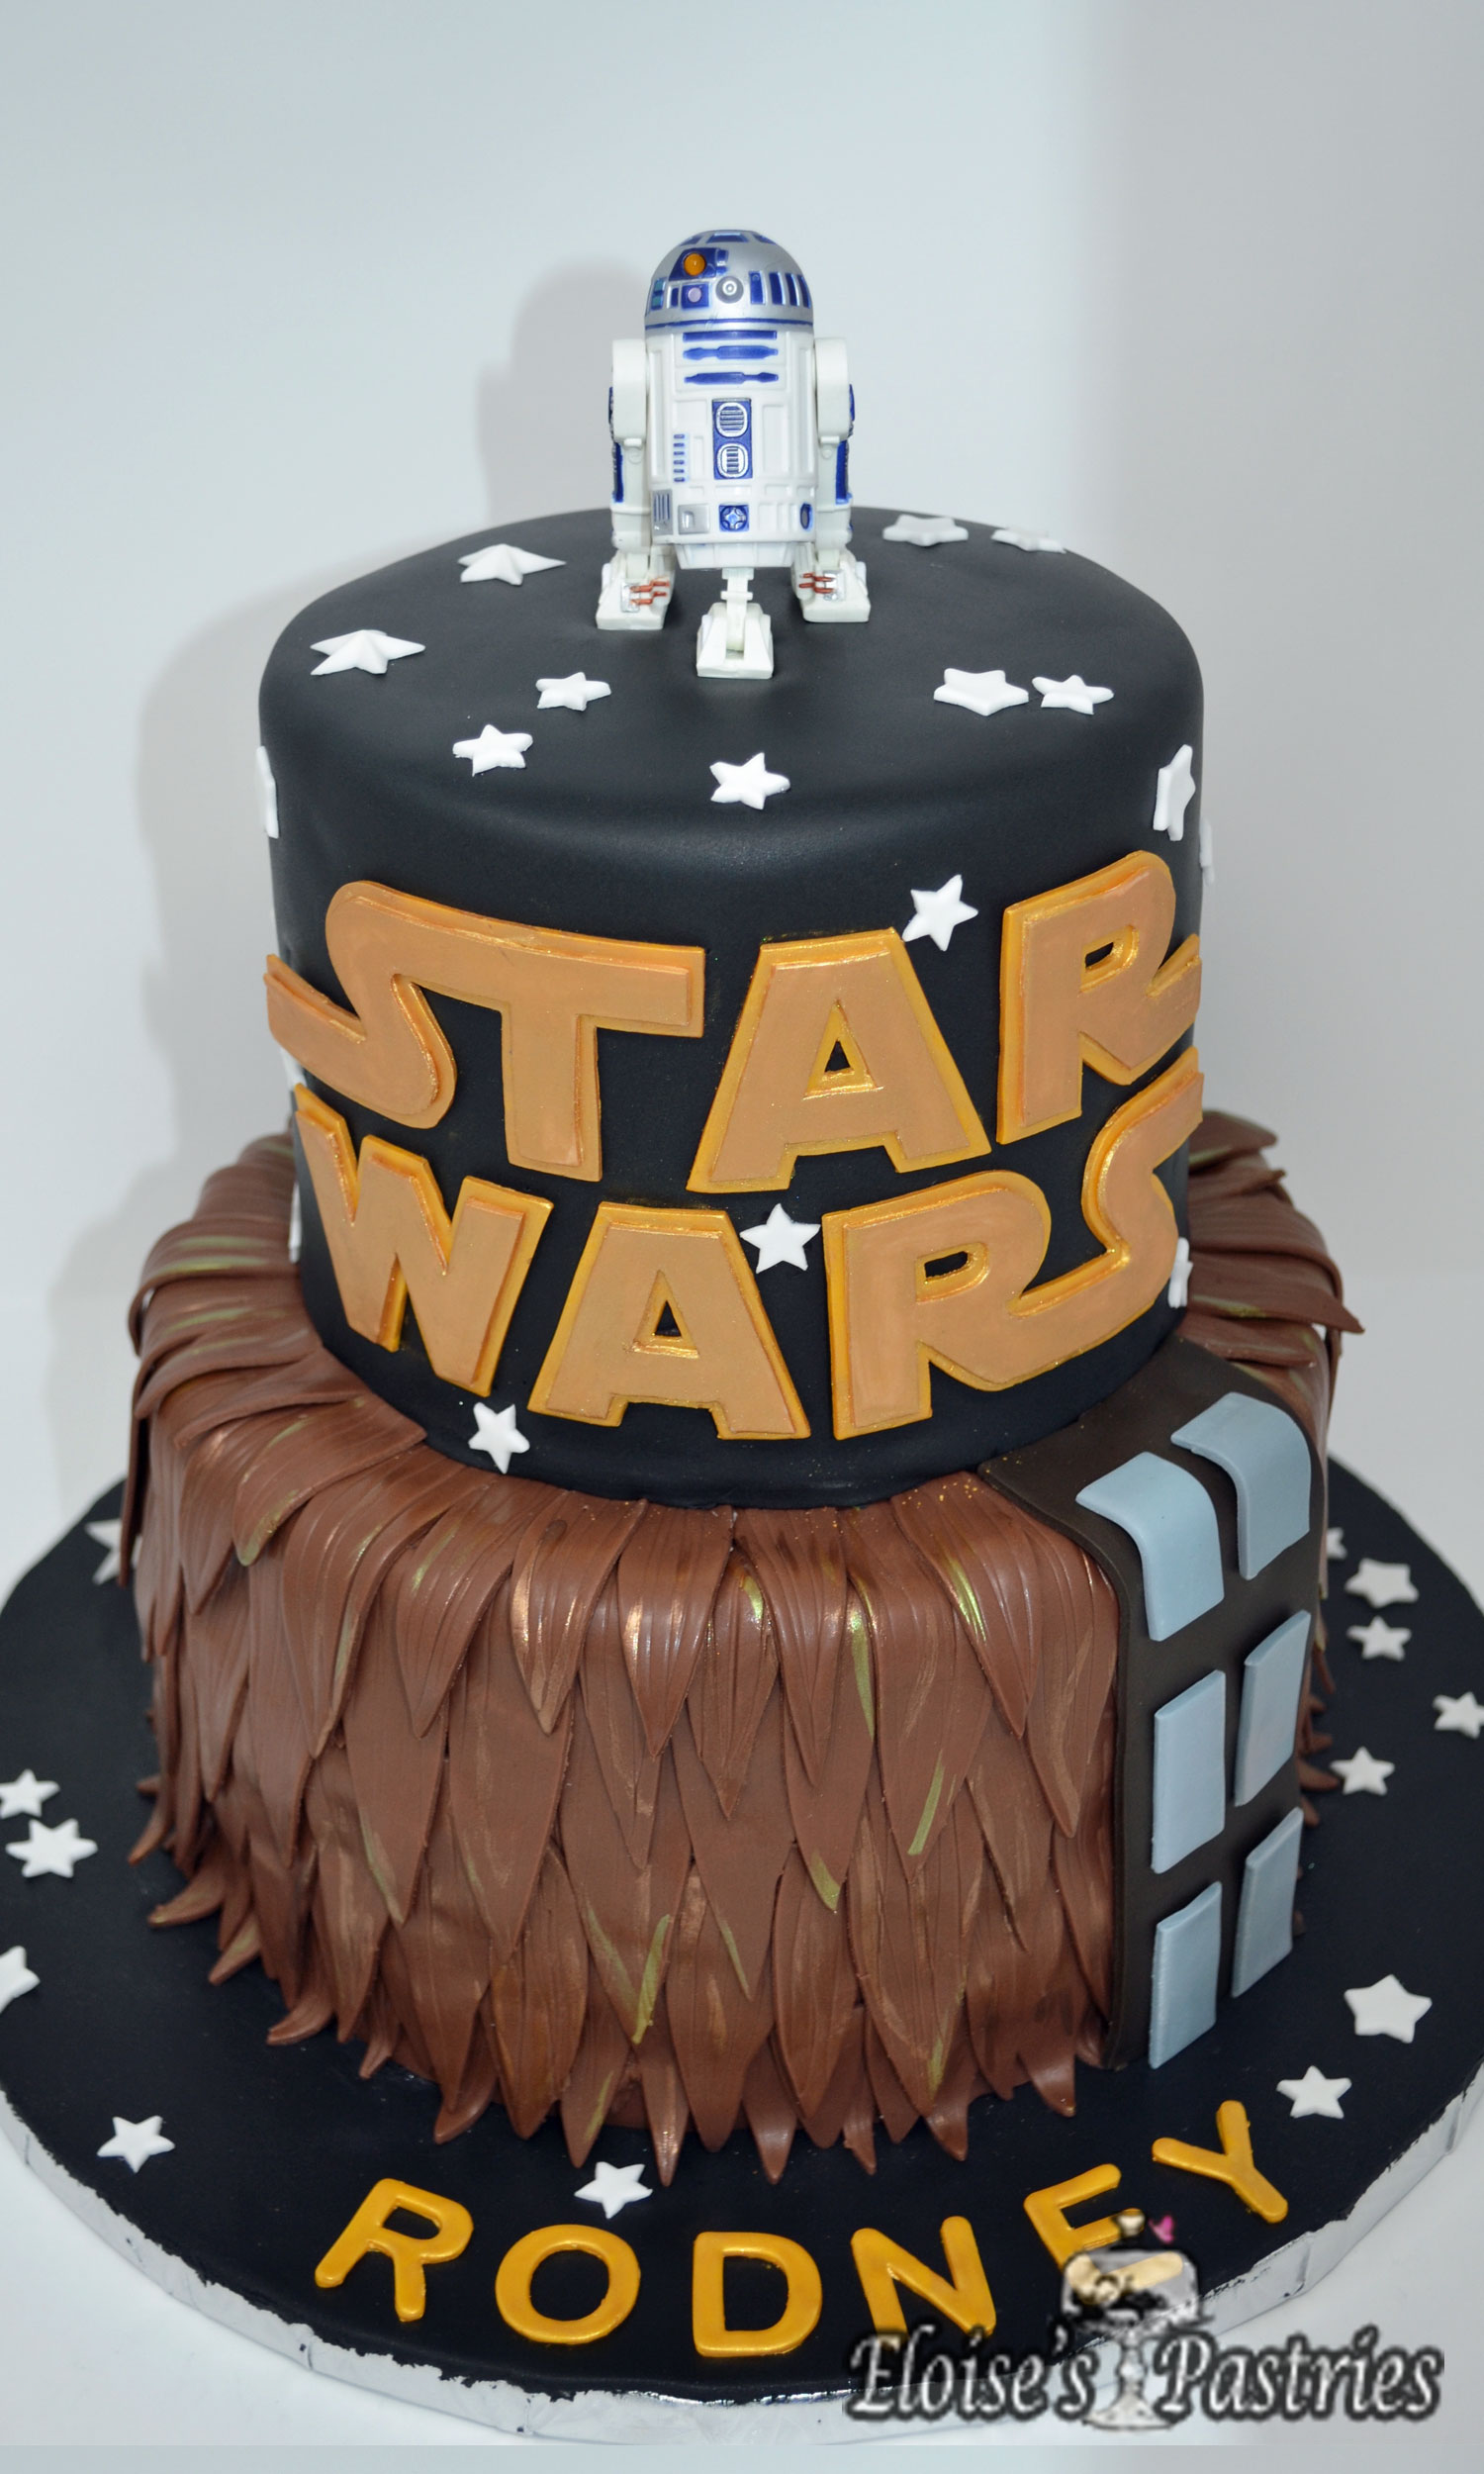 Star Wars - Chewbacka and R2D2 Birthday Cake